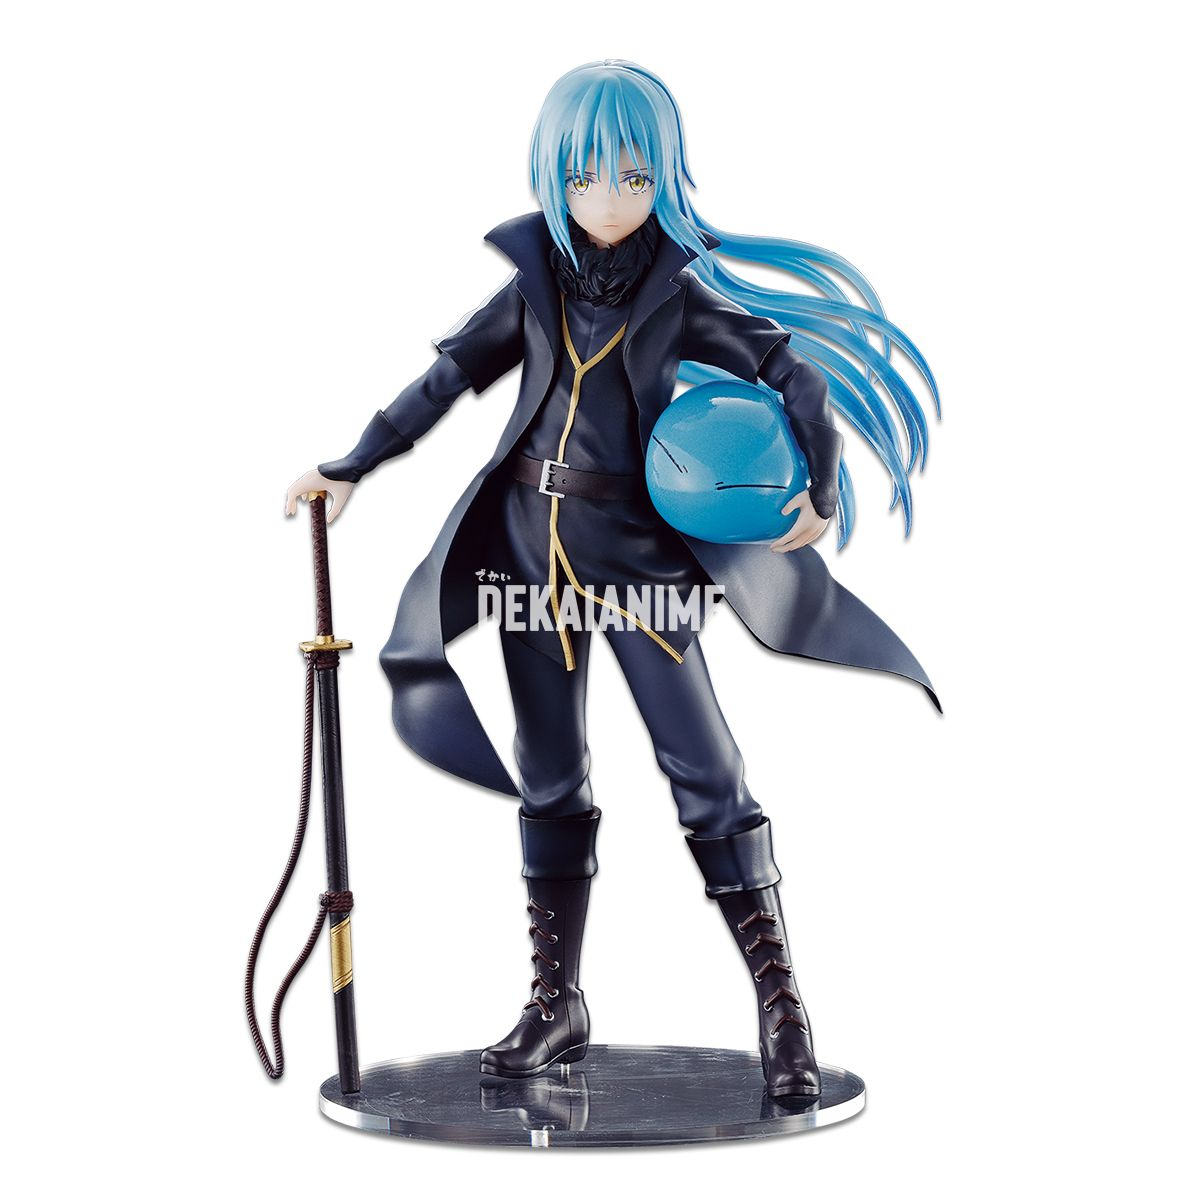 That Time I Got Reincarnated As A Slime Rimuru Demon Demon Awakening Ichibansho Pvc Statue Brittney karbowski (rimuru), jason liebrecht (satoru) (english). that time i got reincarnated as a slime rimuru demon demon awakening ichibansho pvc statue